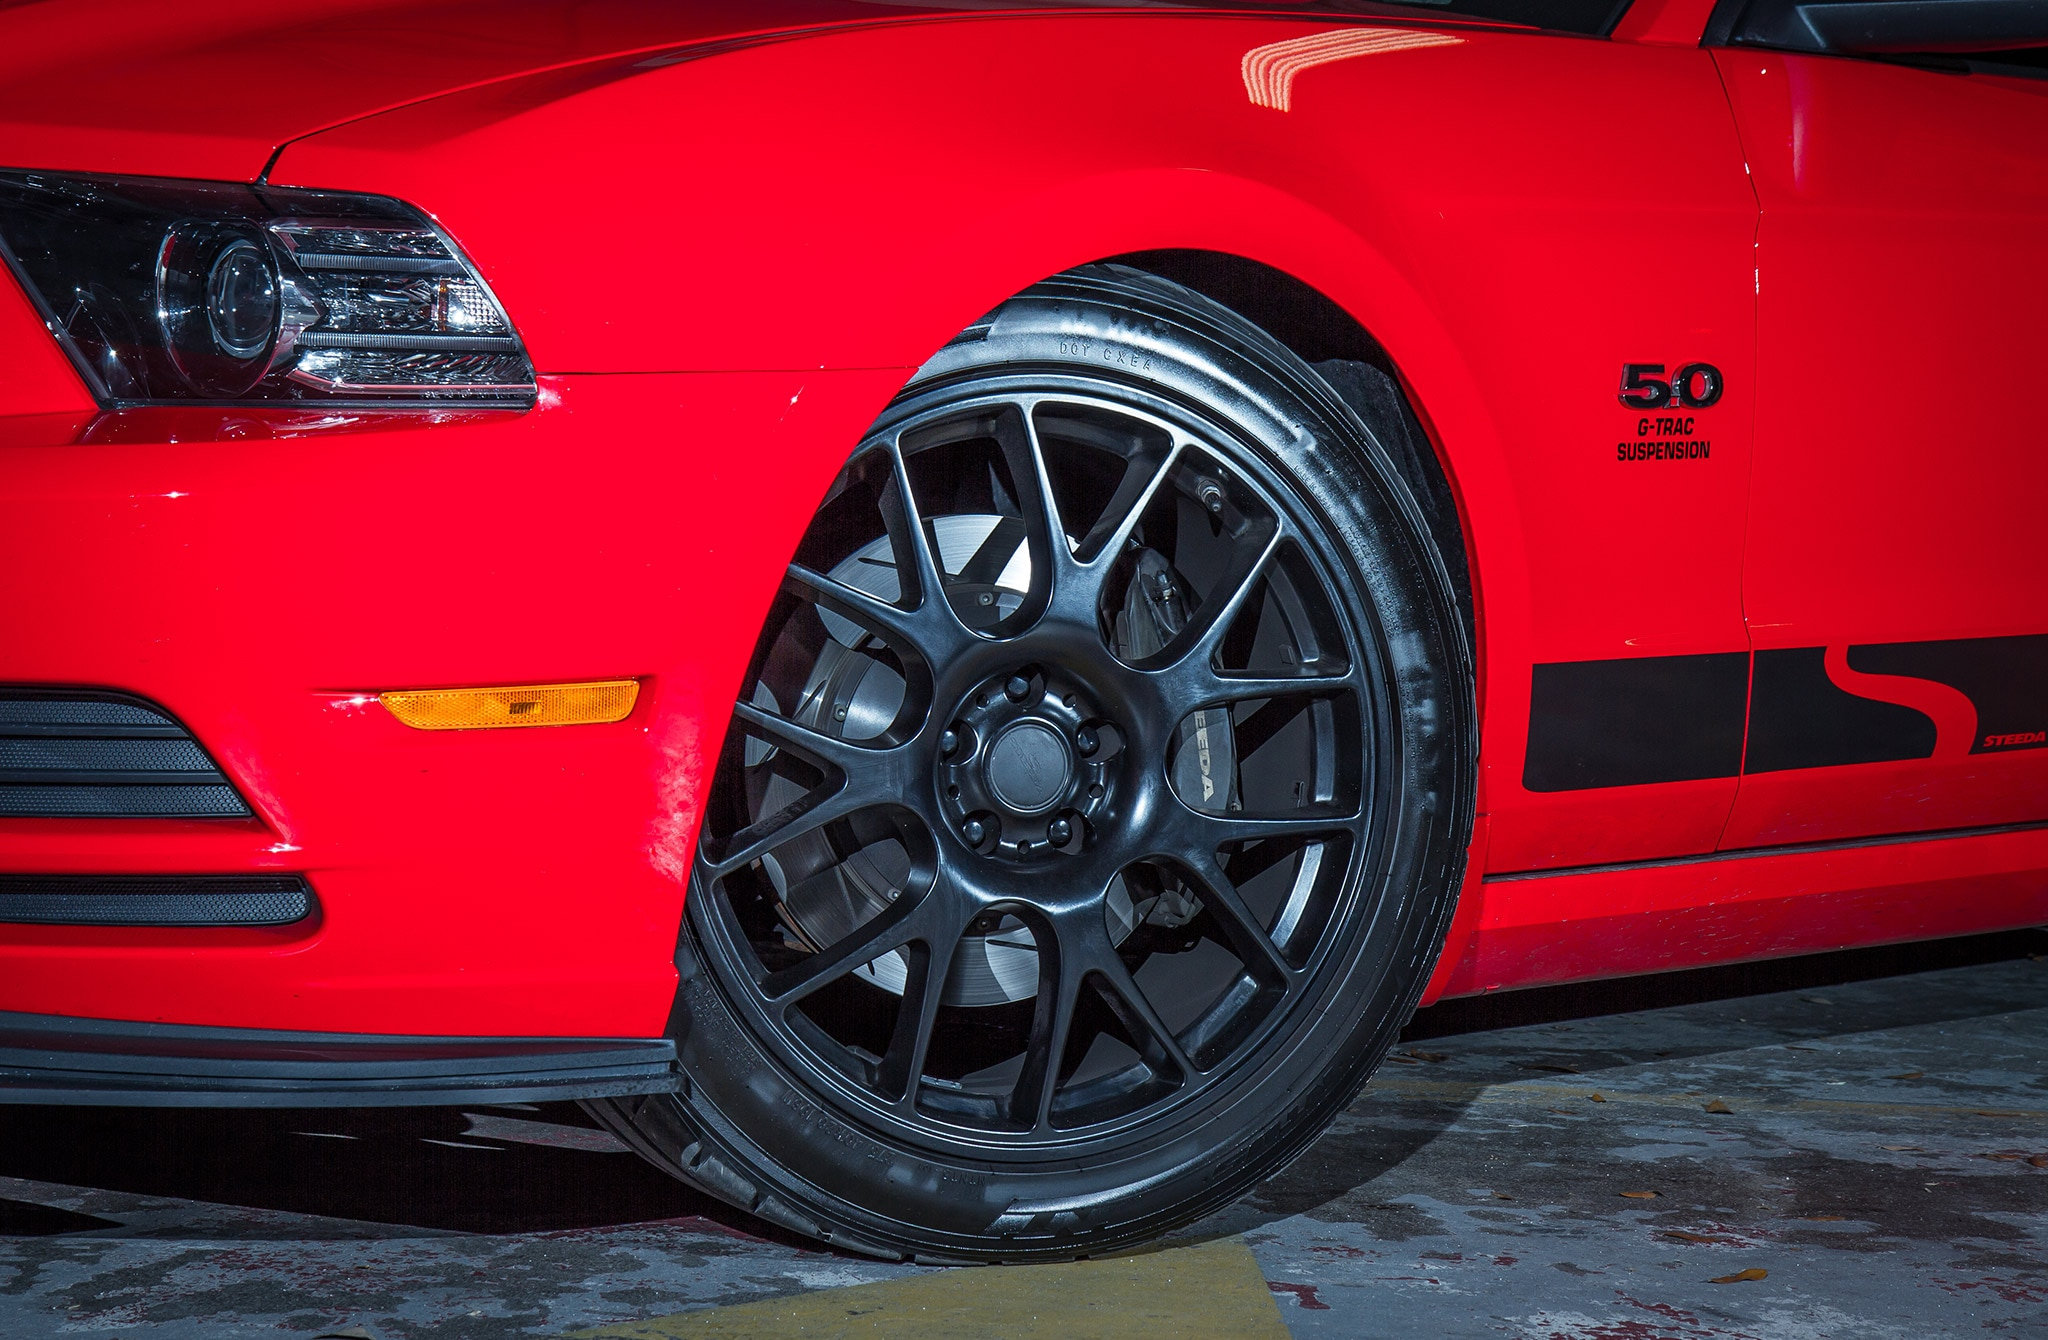 2014 Ford Mustang Steeda Red Q650 St R Wheel